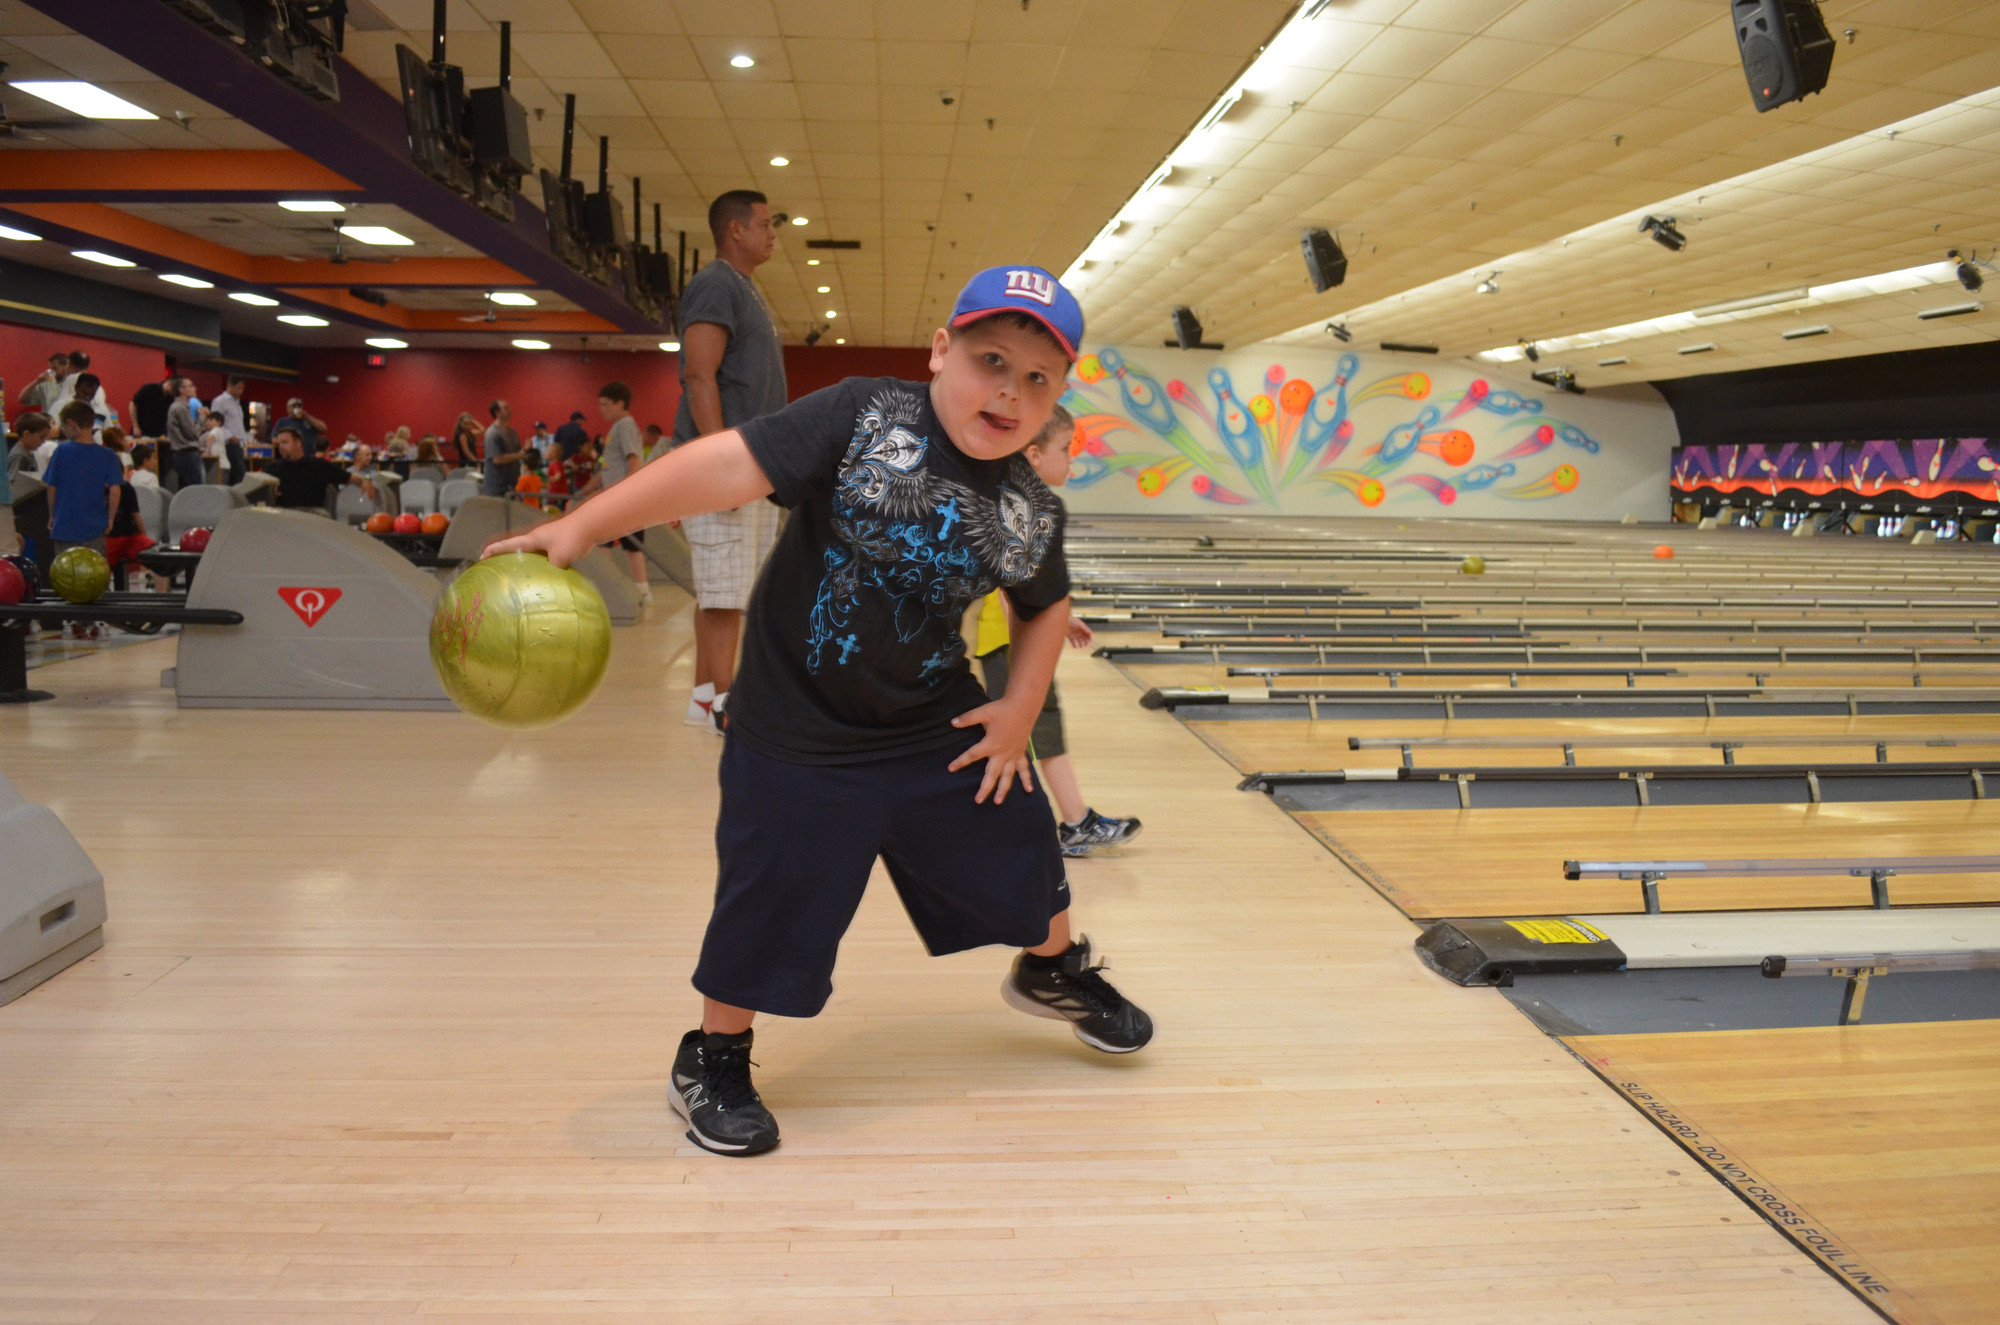 Dominic Longardino, 5, aimed for a strike.